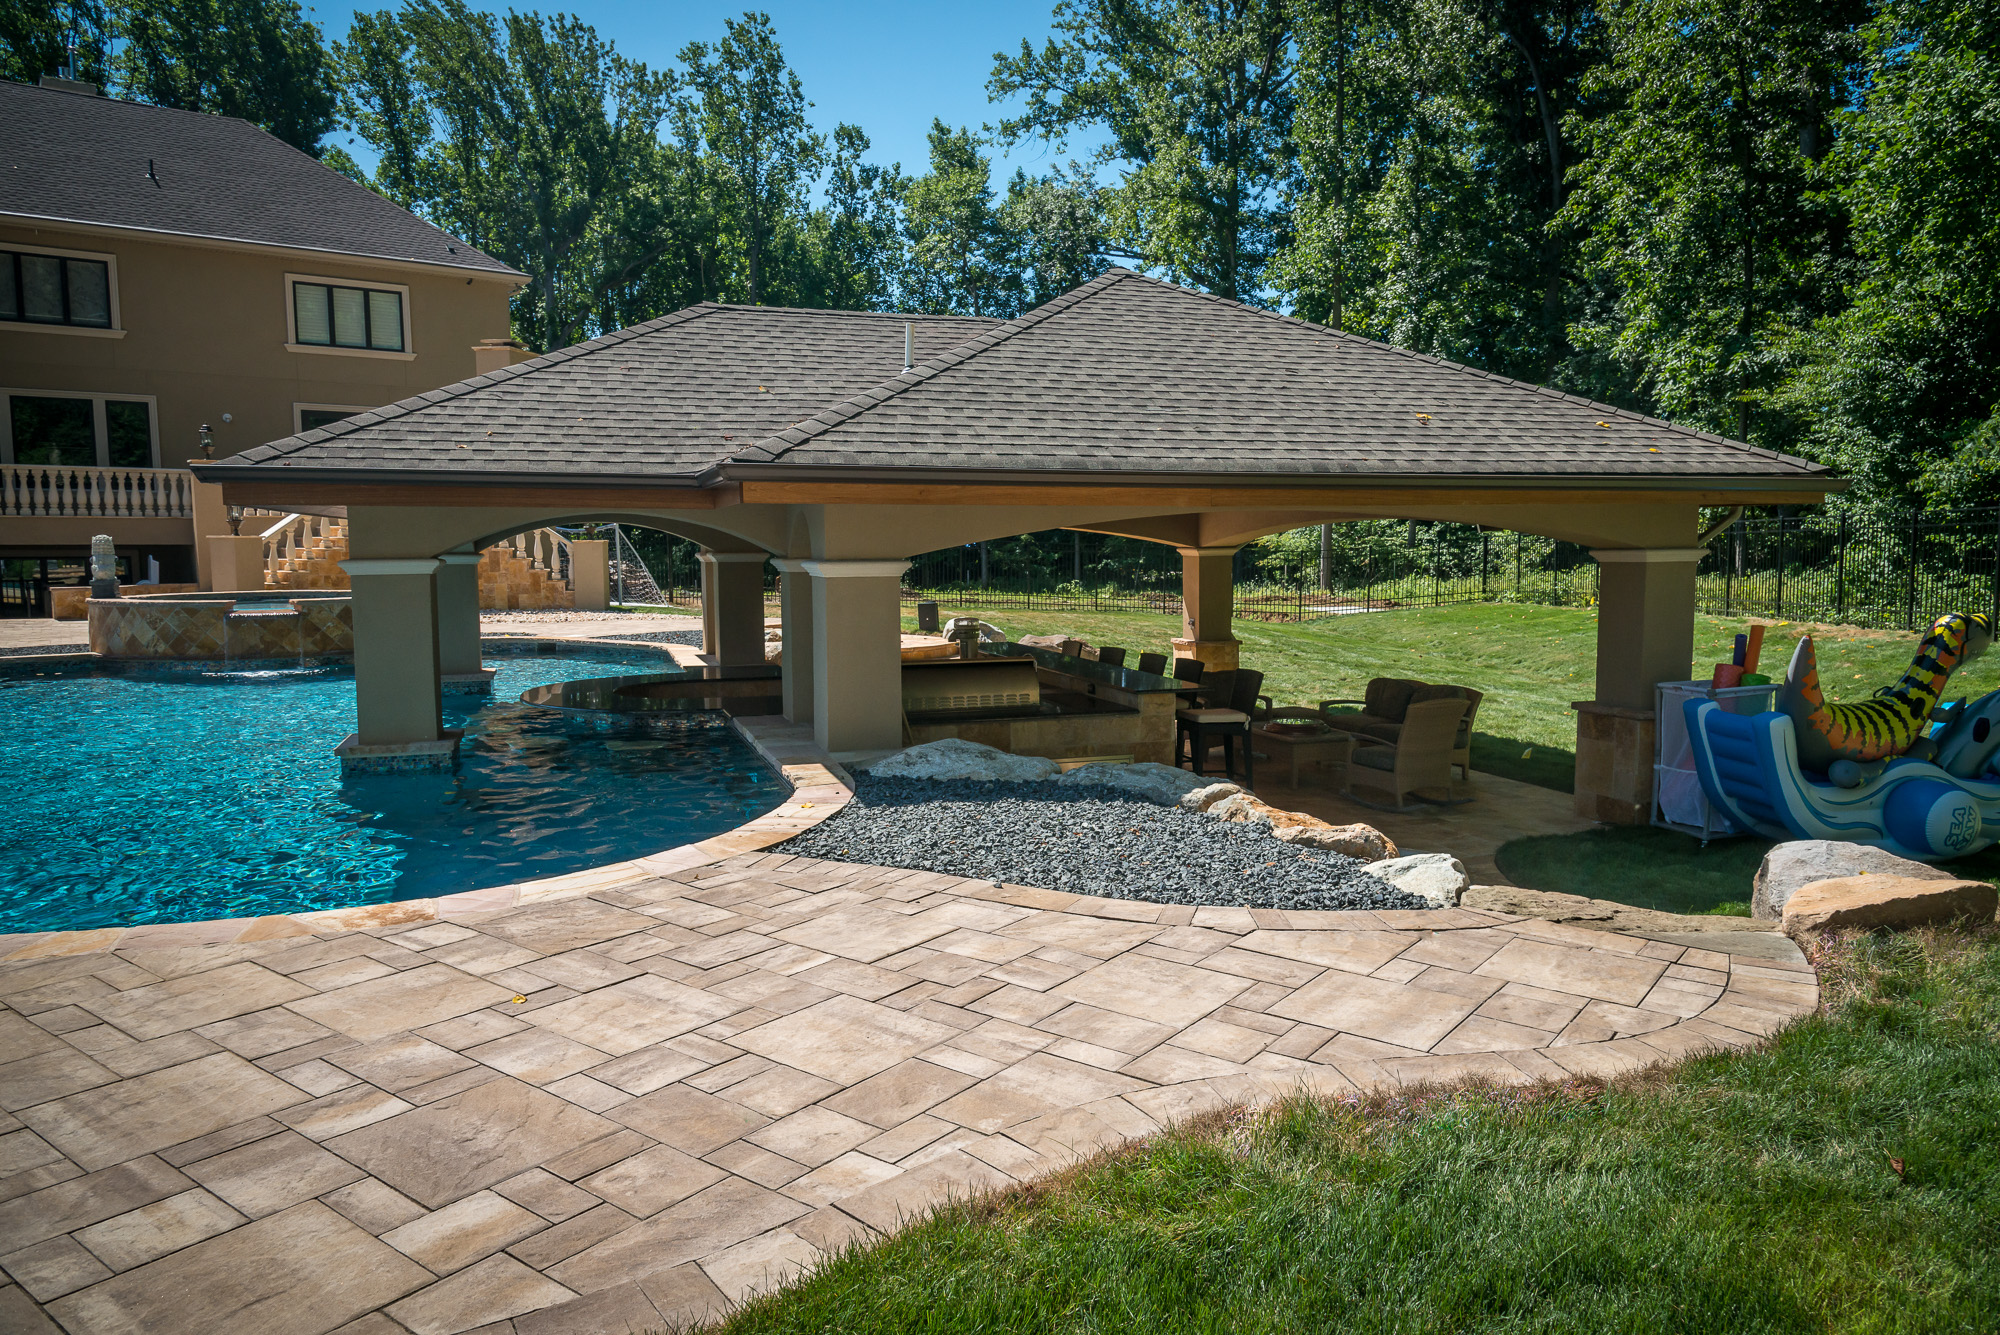 Holmdel nj custom inground swimming pool design for Pool design nj